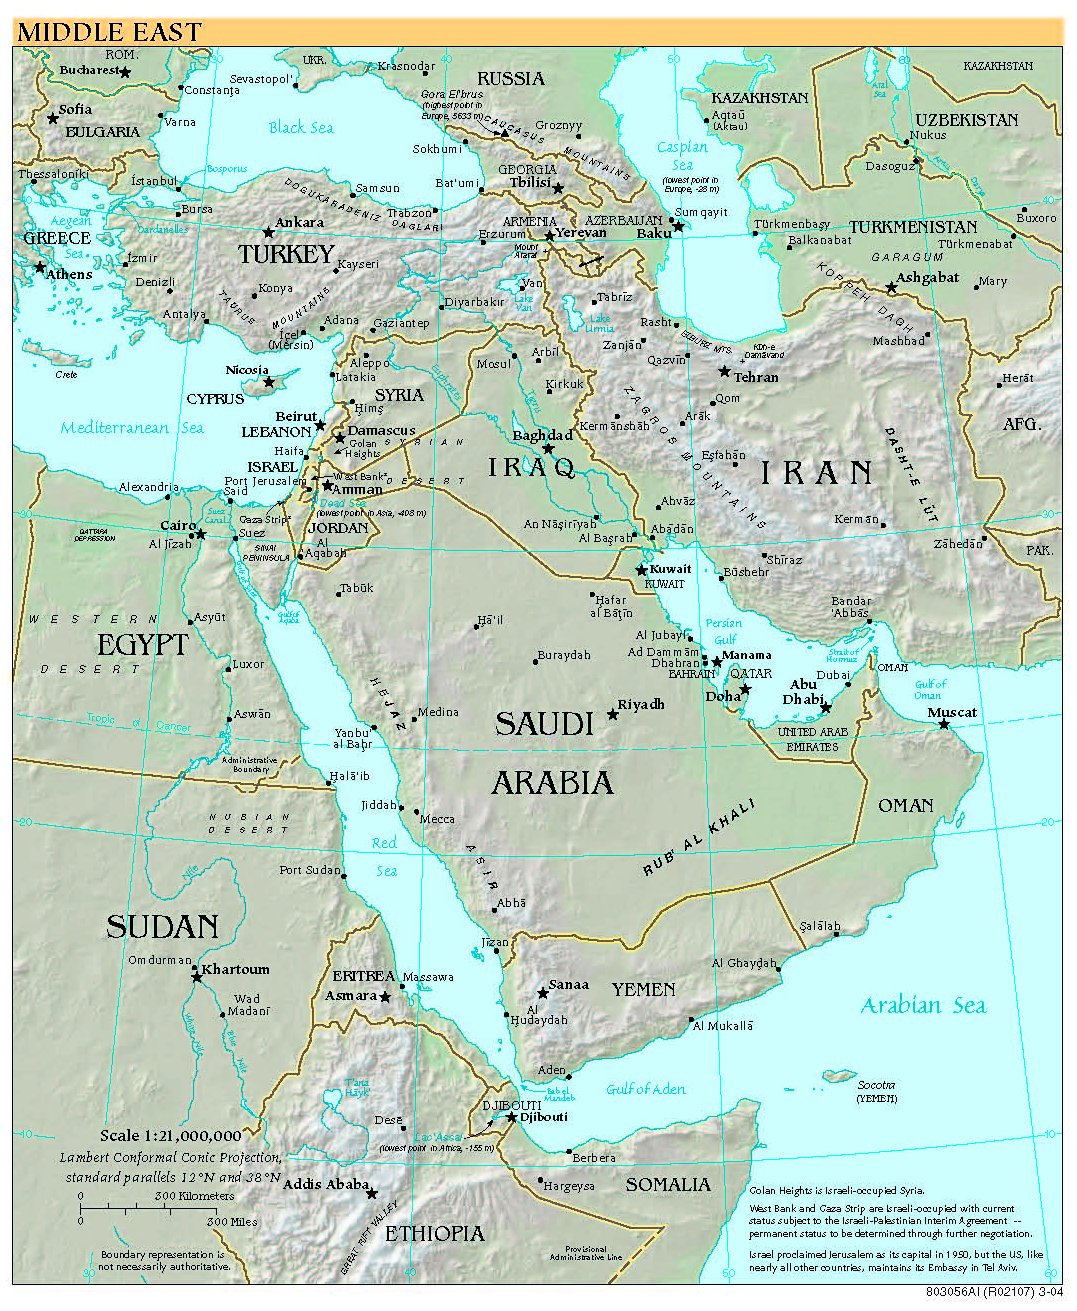 Middle East Map With Countries.Free High Resolution Map Of The Middle East